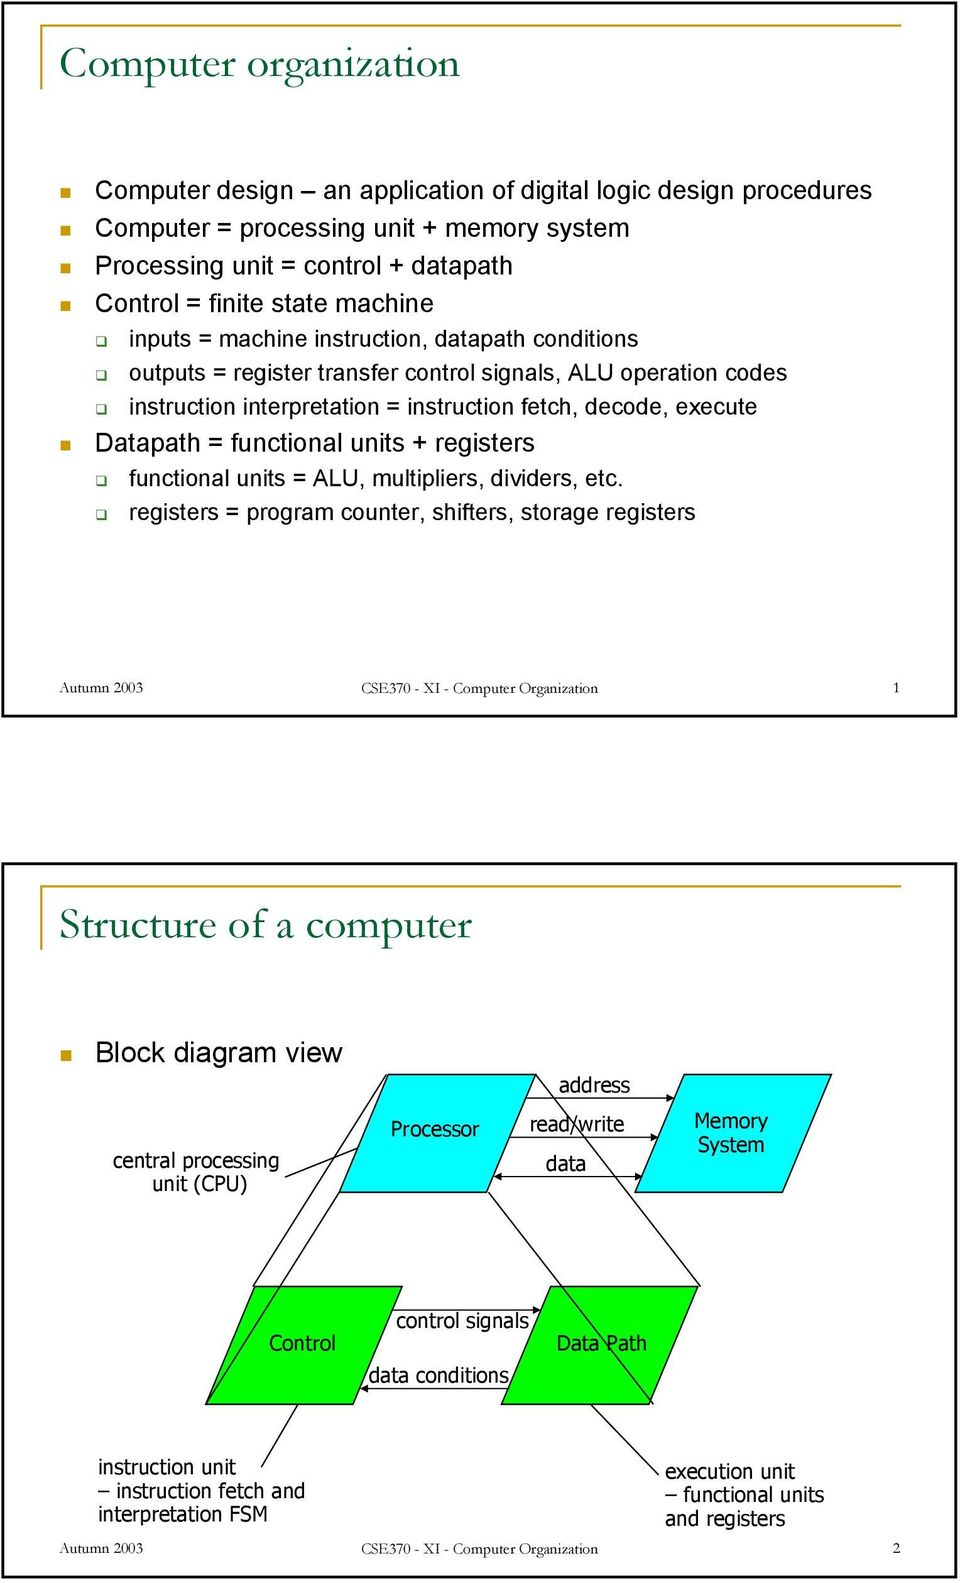 = ALU, multipliers, dividers, etc.